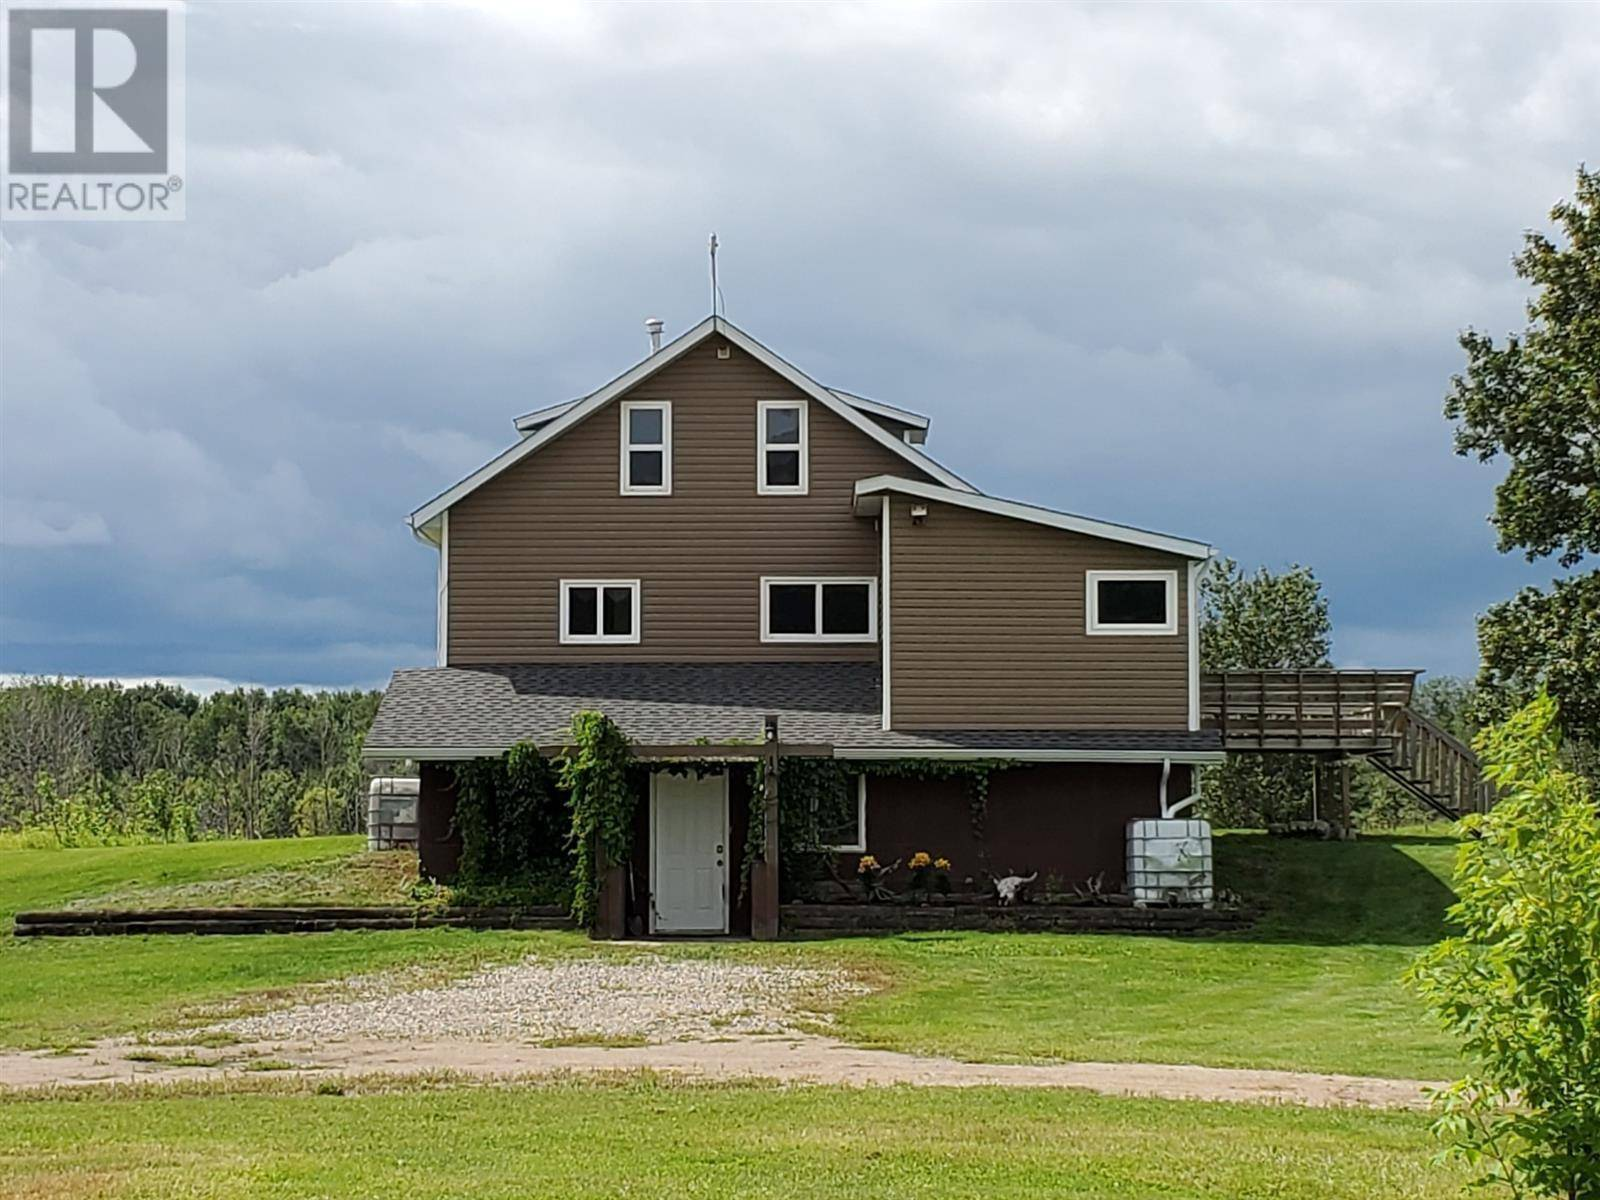 House for sale at 26 Acreage Kms Of Lk East Meadow Lake Rm No.588 Saskatchewan - MLS: SK783499